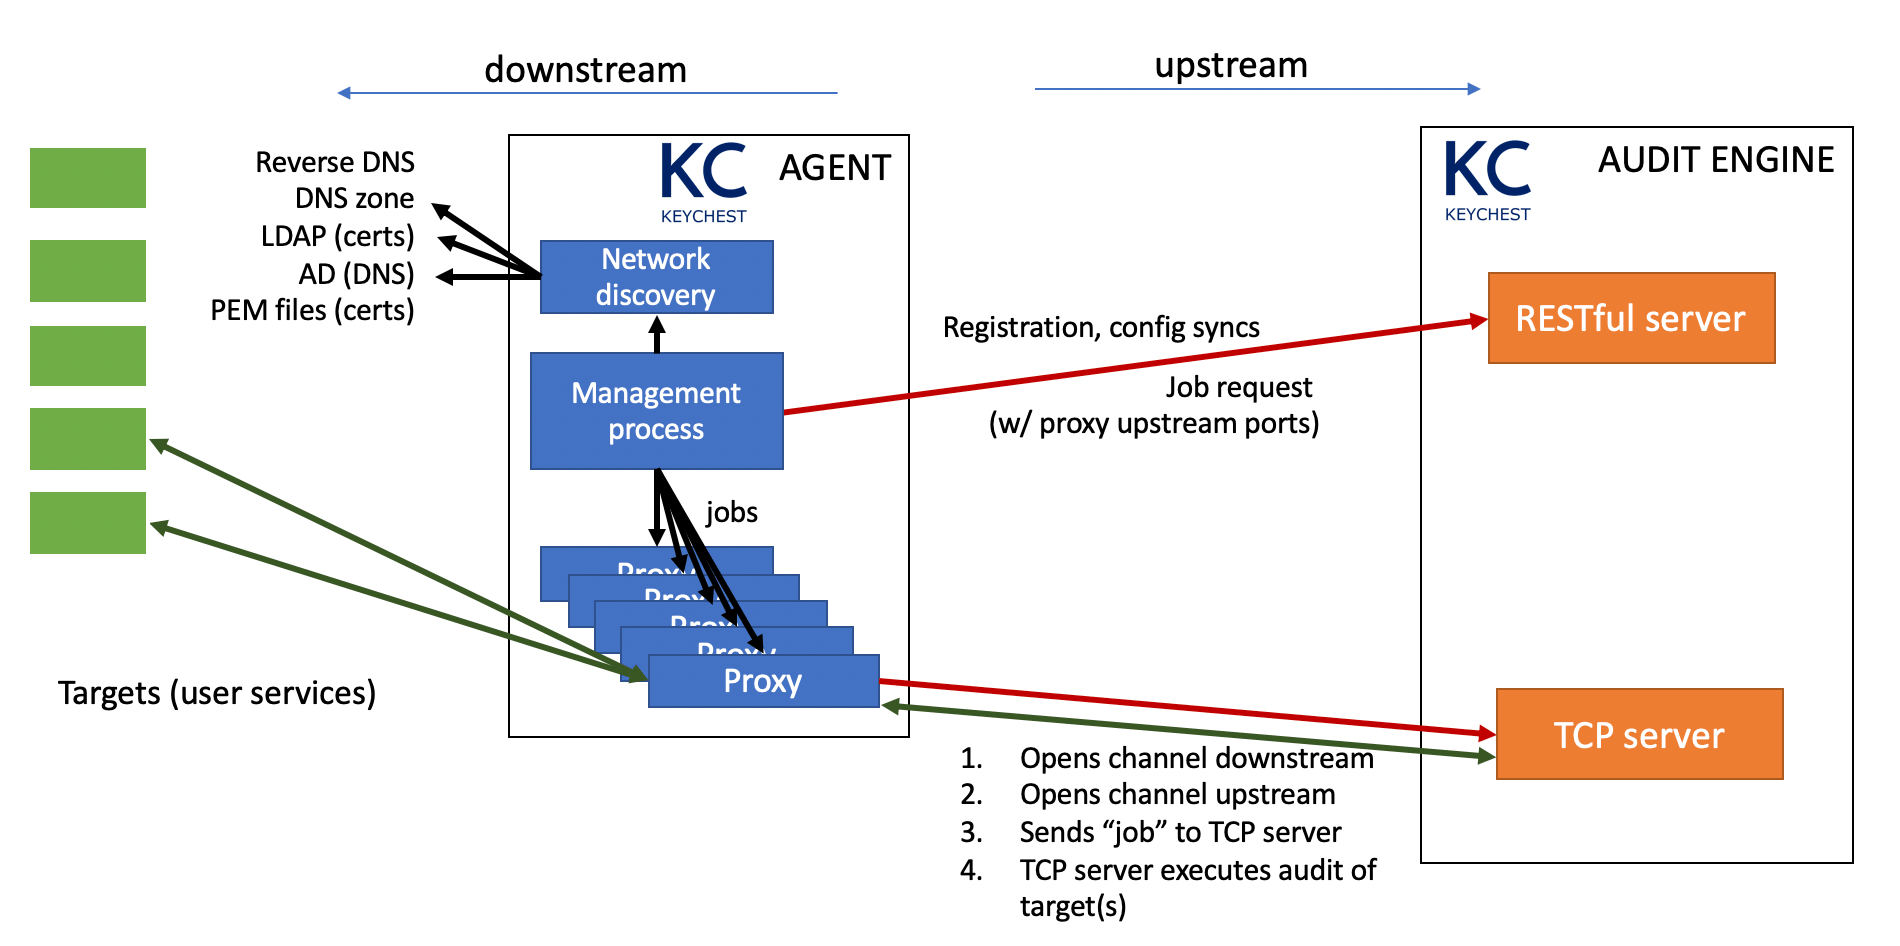 Communication diagram of KeyChest agent in the reverse proxy mode